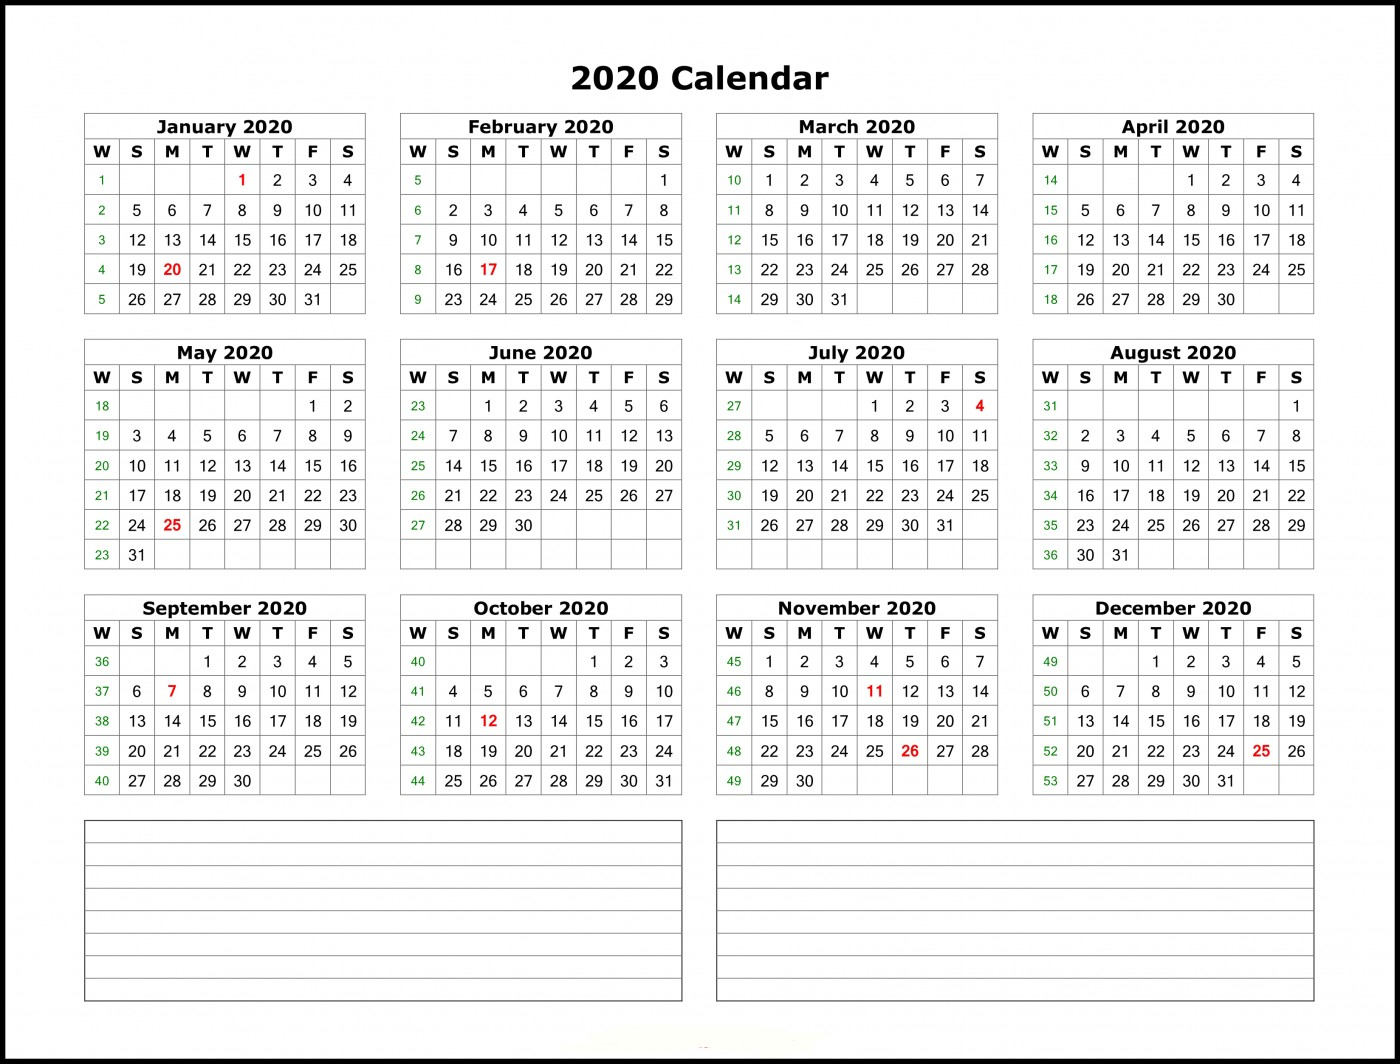 010 Ic Weekly Calendar With Us Holidays Template Ideas Free with Vertex Calendars 2020 Printable